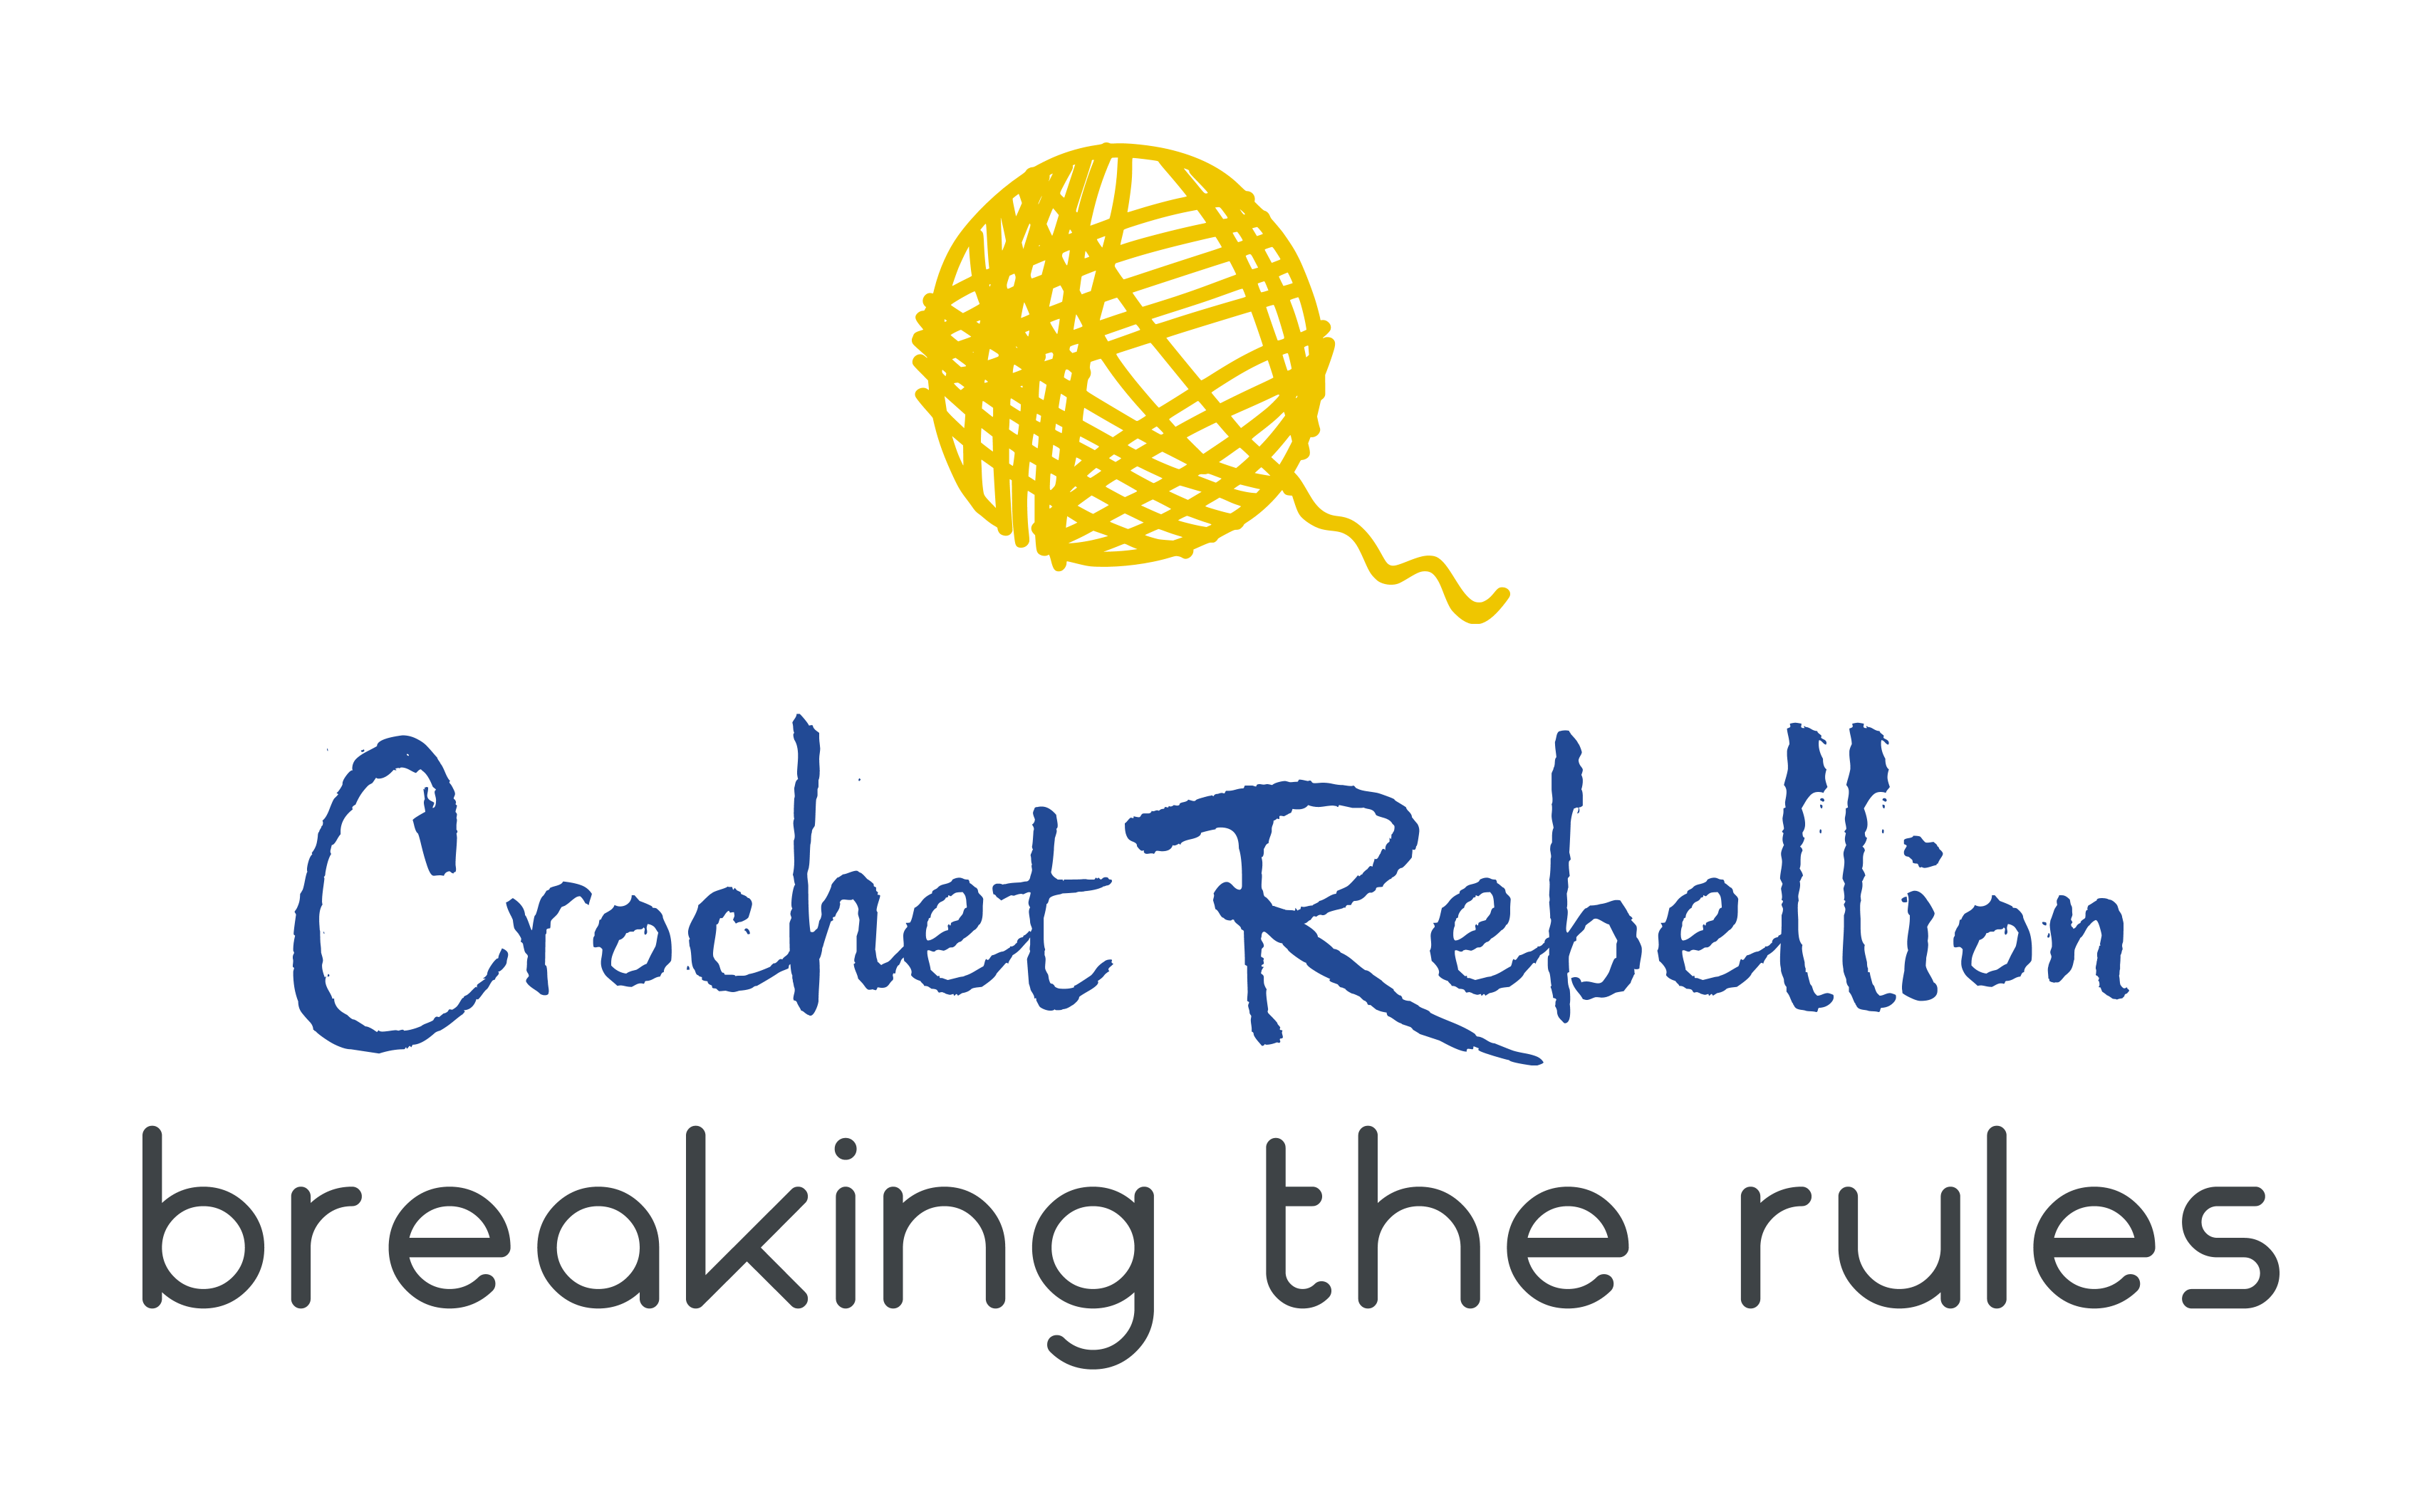 Crochet Rebellion